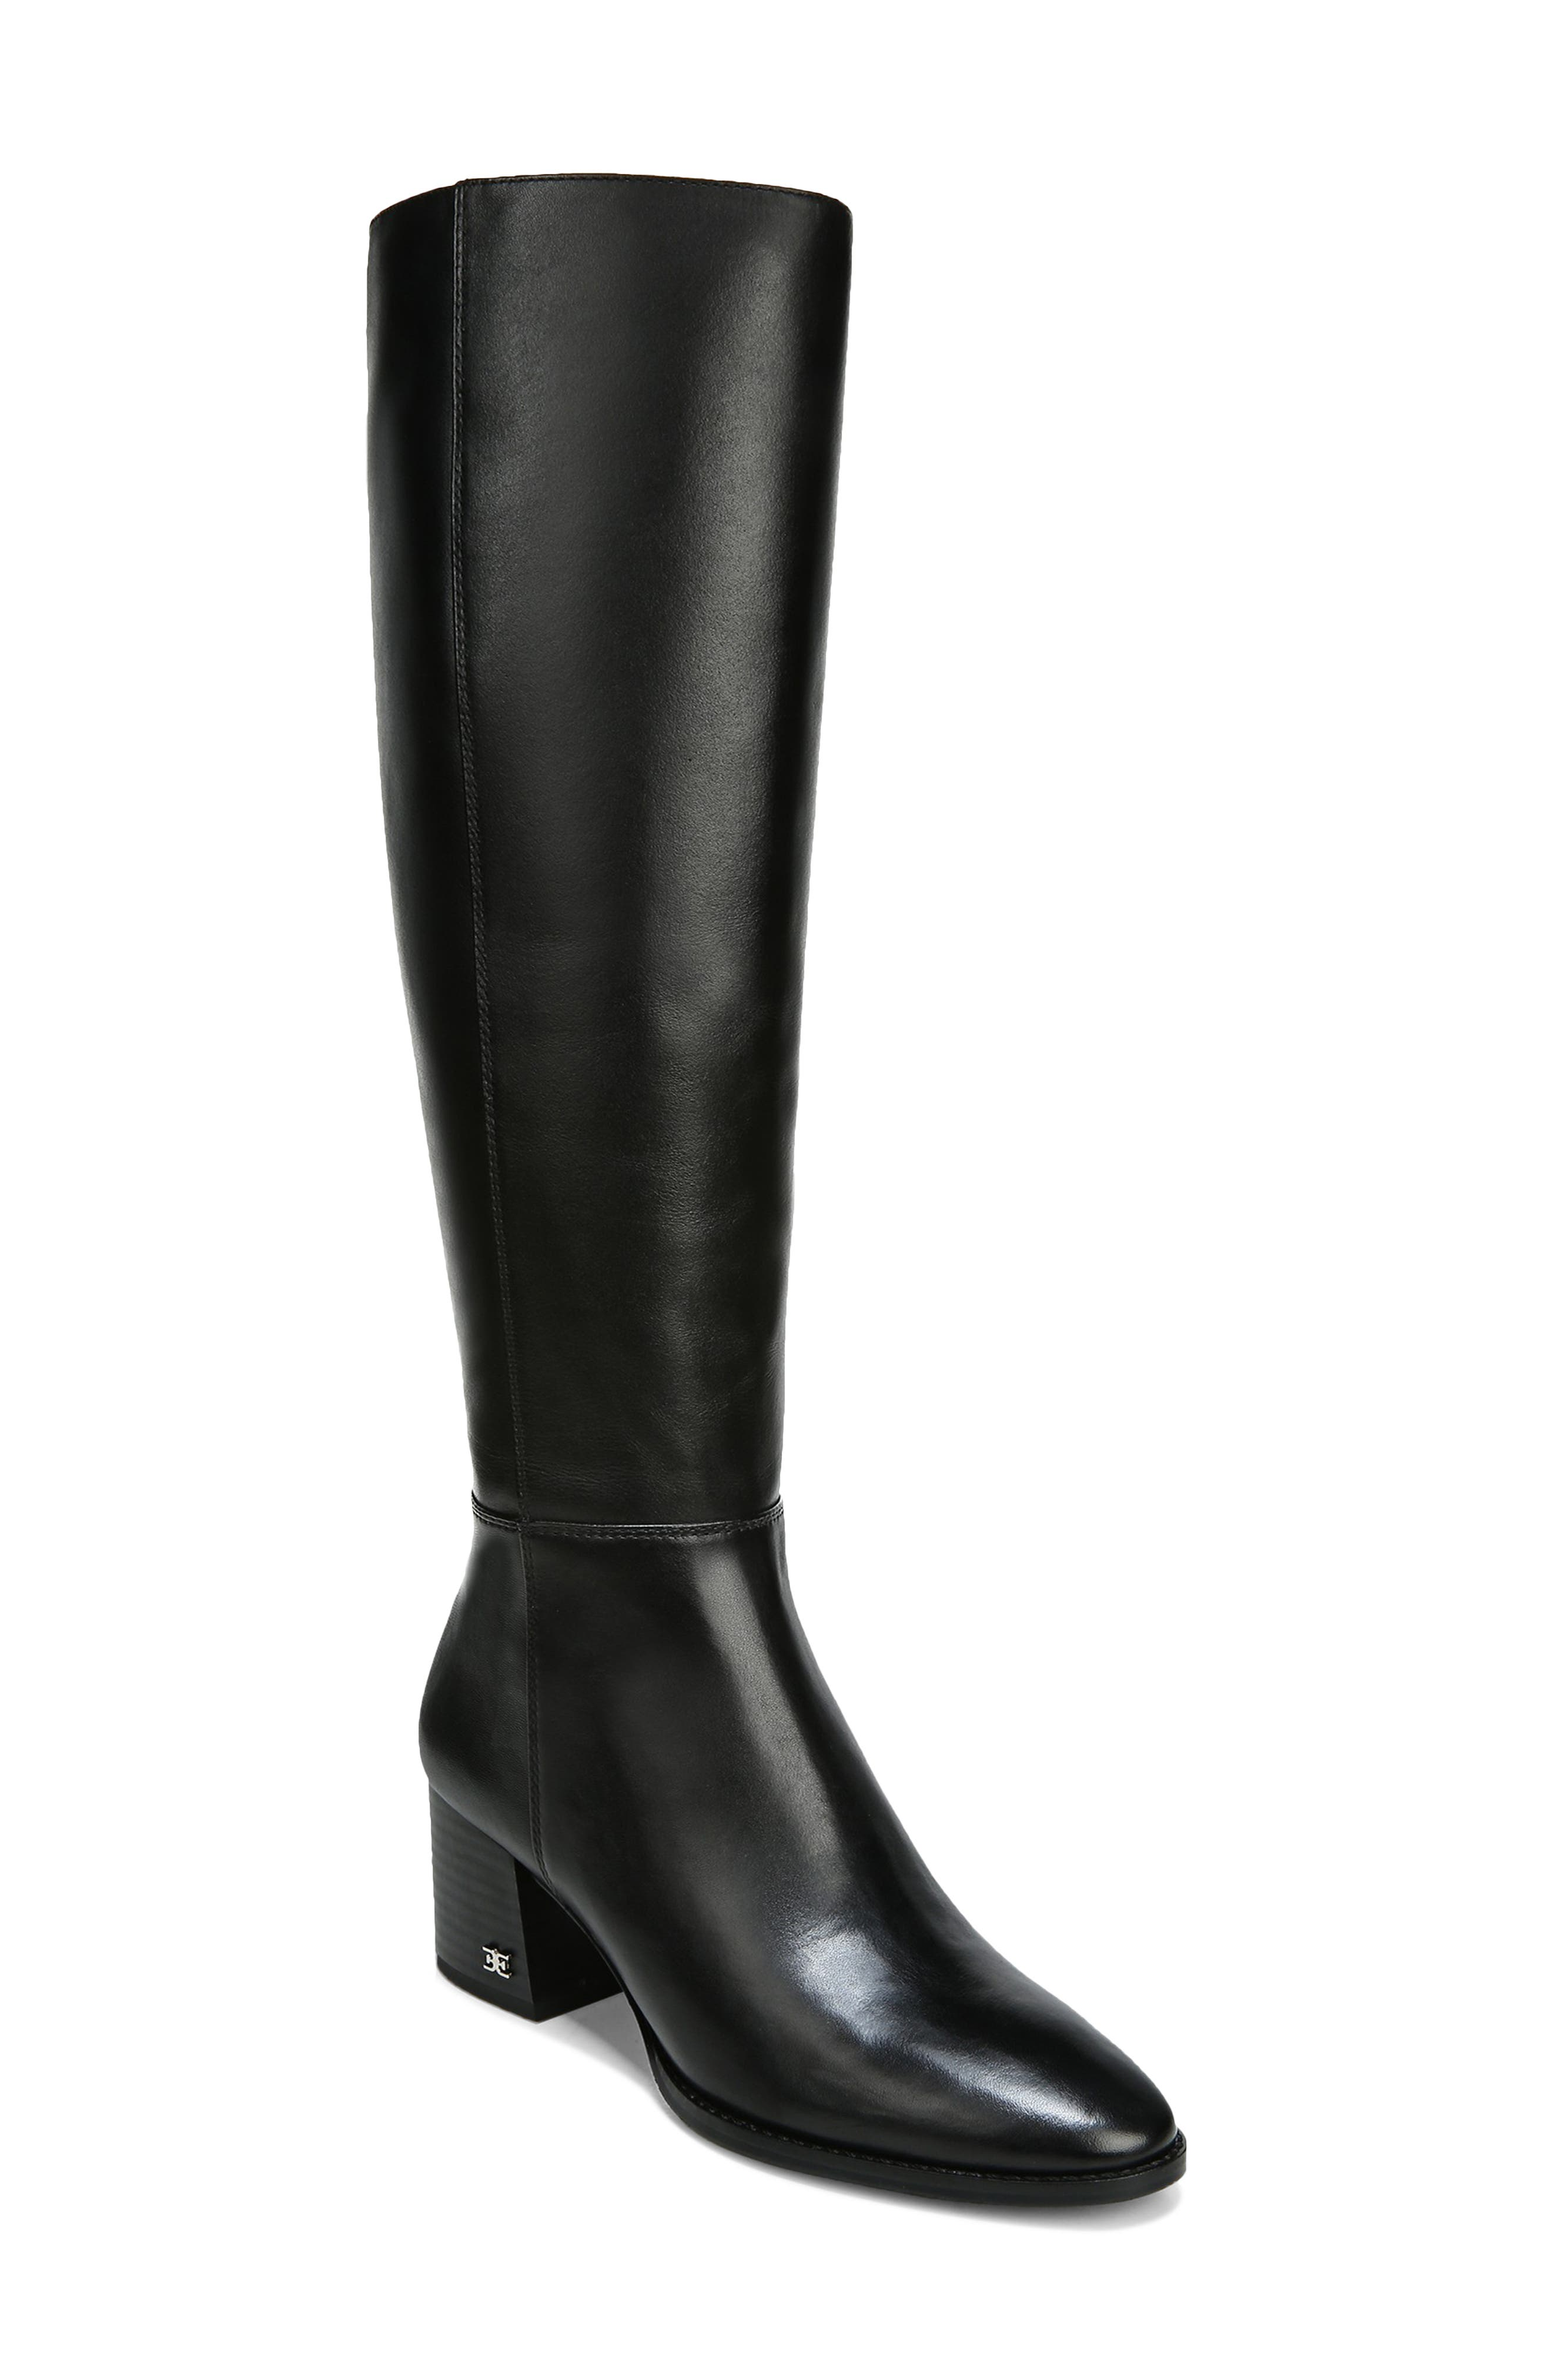 Refine your look with this knee-high boot fashioned from burnished leather and set on a bold block heel. Style Name: Sam Edelman Kerby Knee High Boot (Women). Style Number: 6084891. Available in stores.